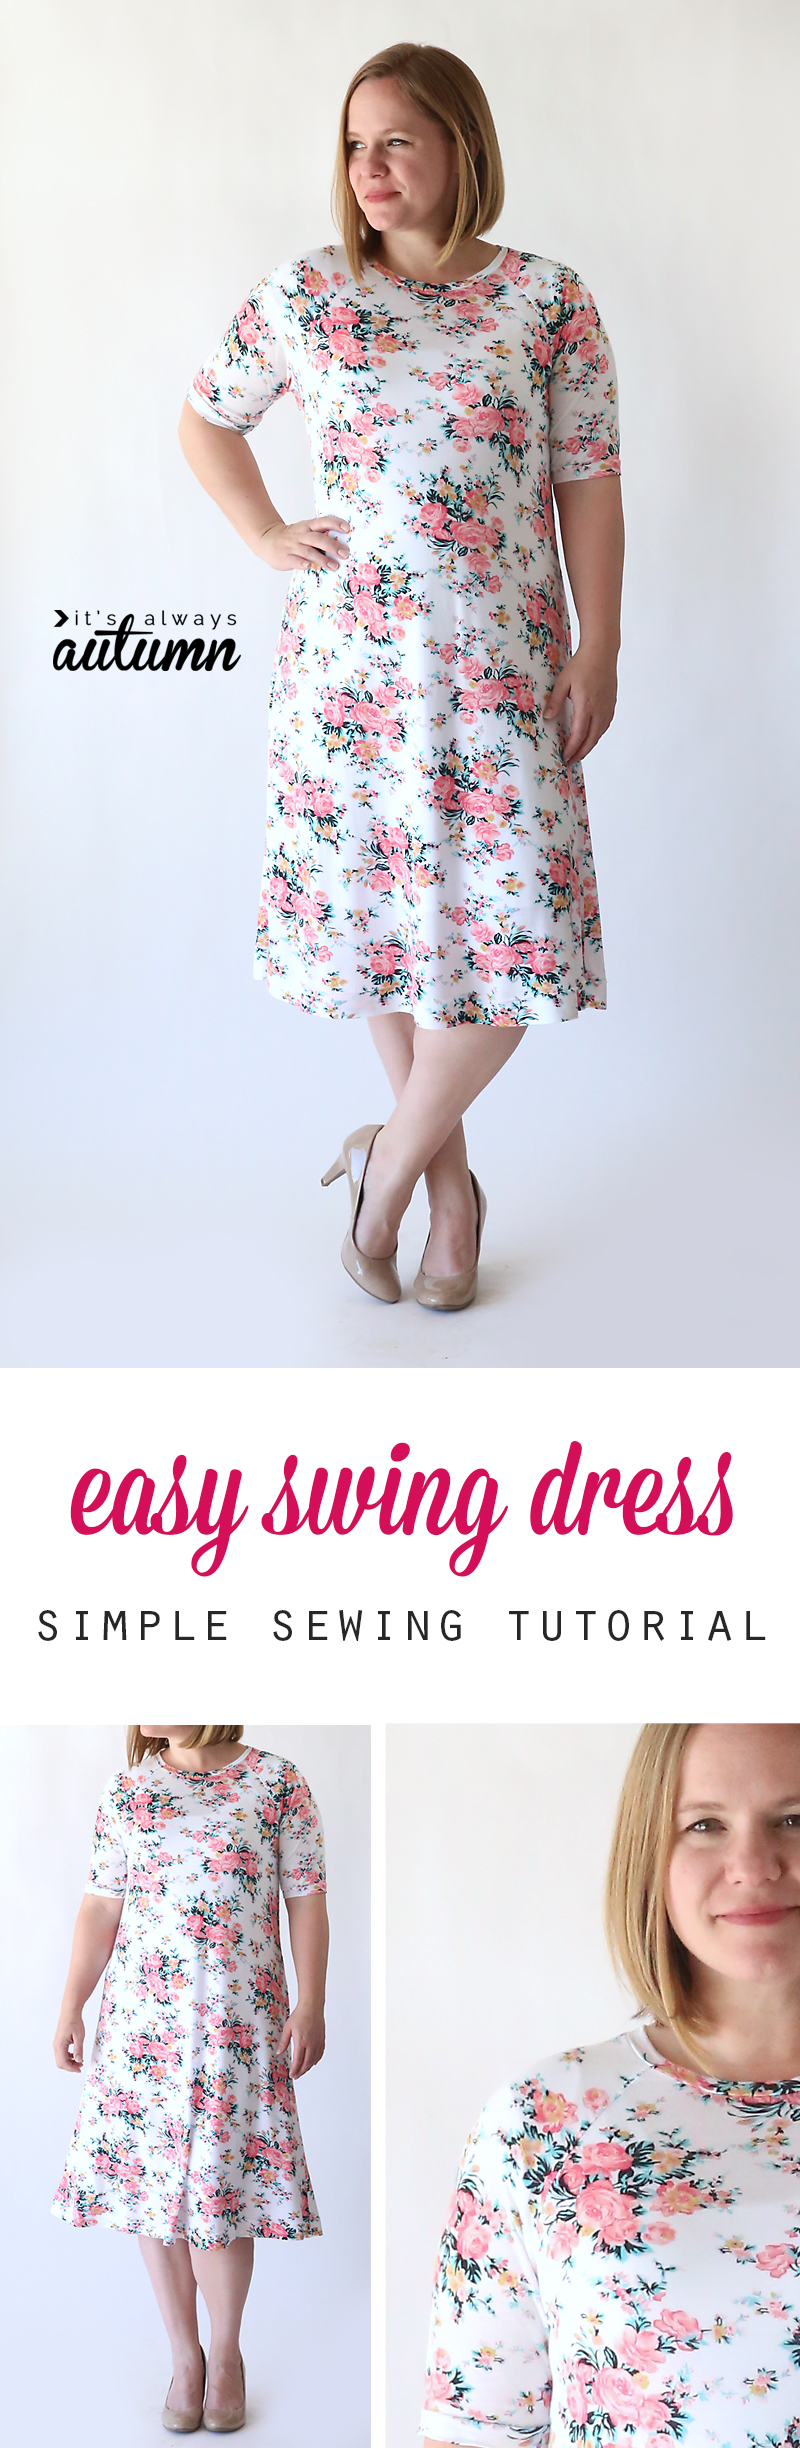 A girl in a floral swing dress made from a sewing tutorial